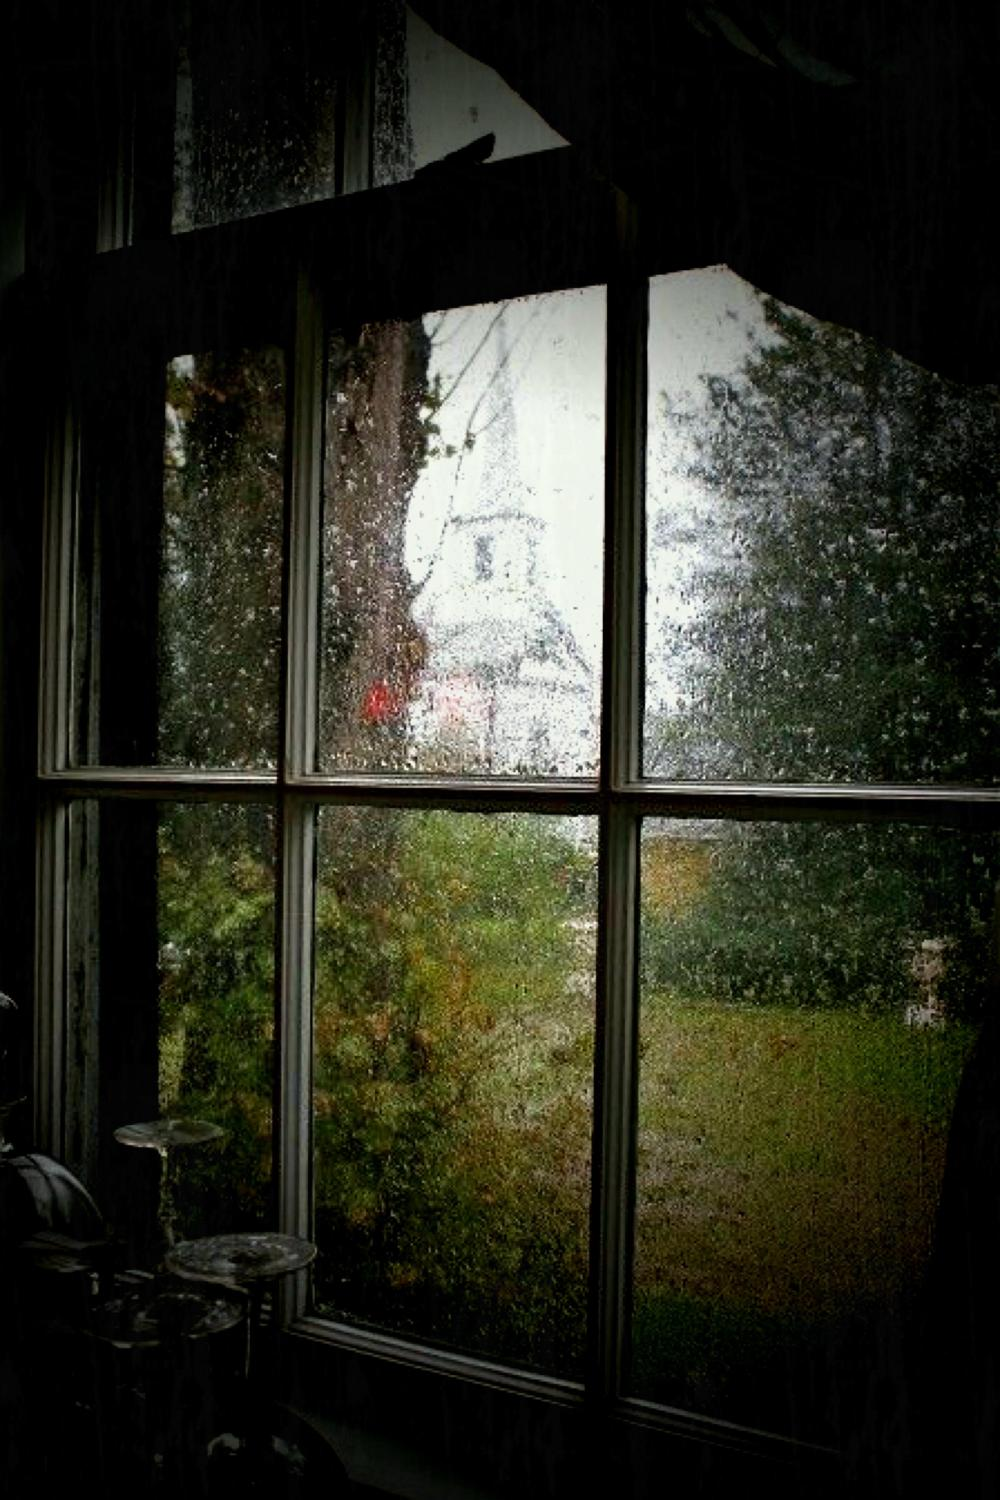 rainy-days-zz-zwyanezade-cozy-dayrainy-view-window-rain-rainy-day-meme-rainy-day-jazz